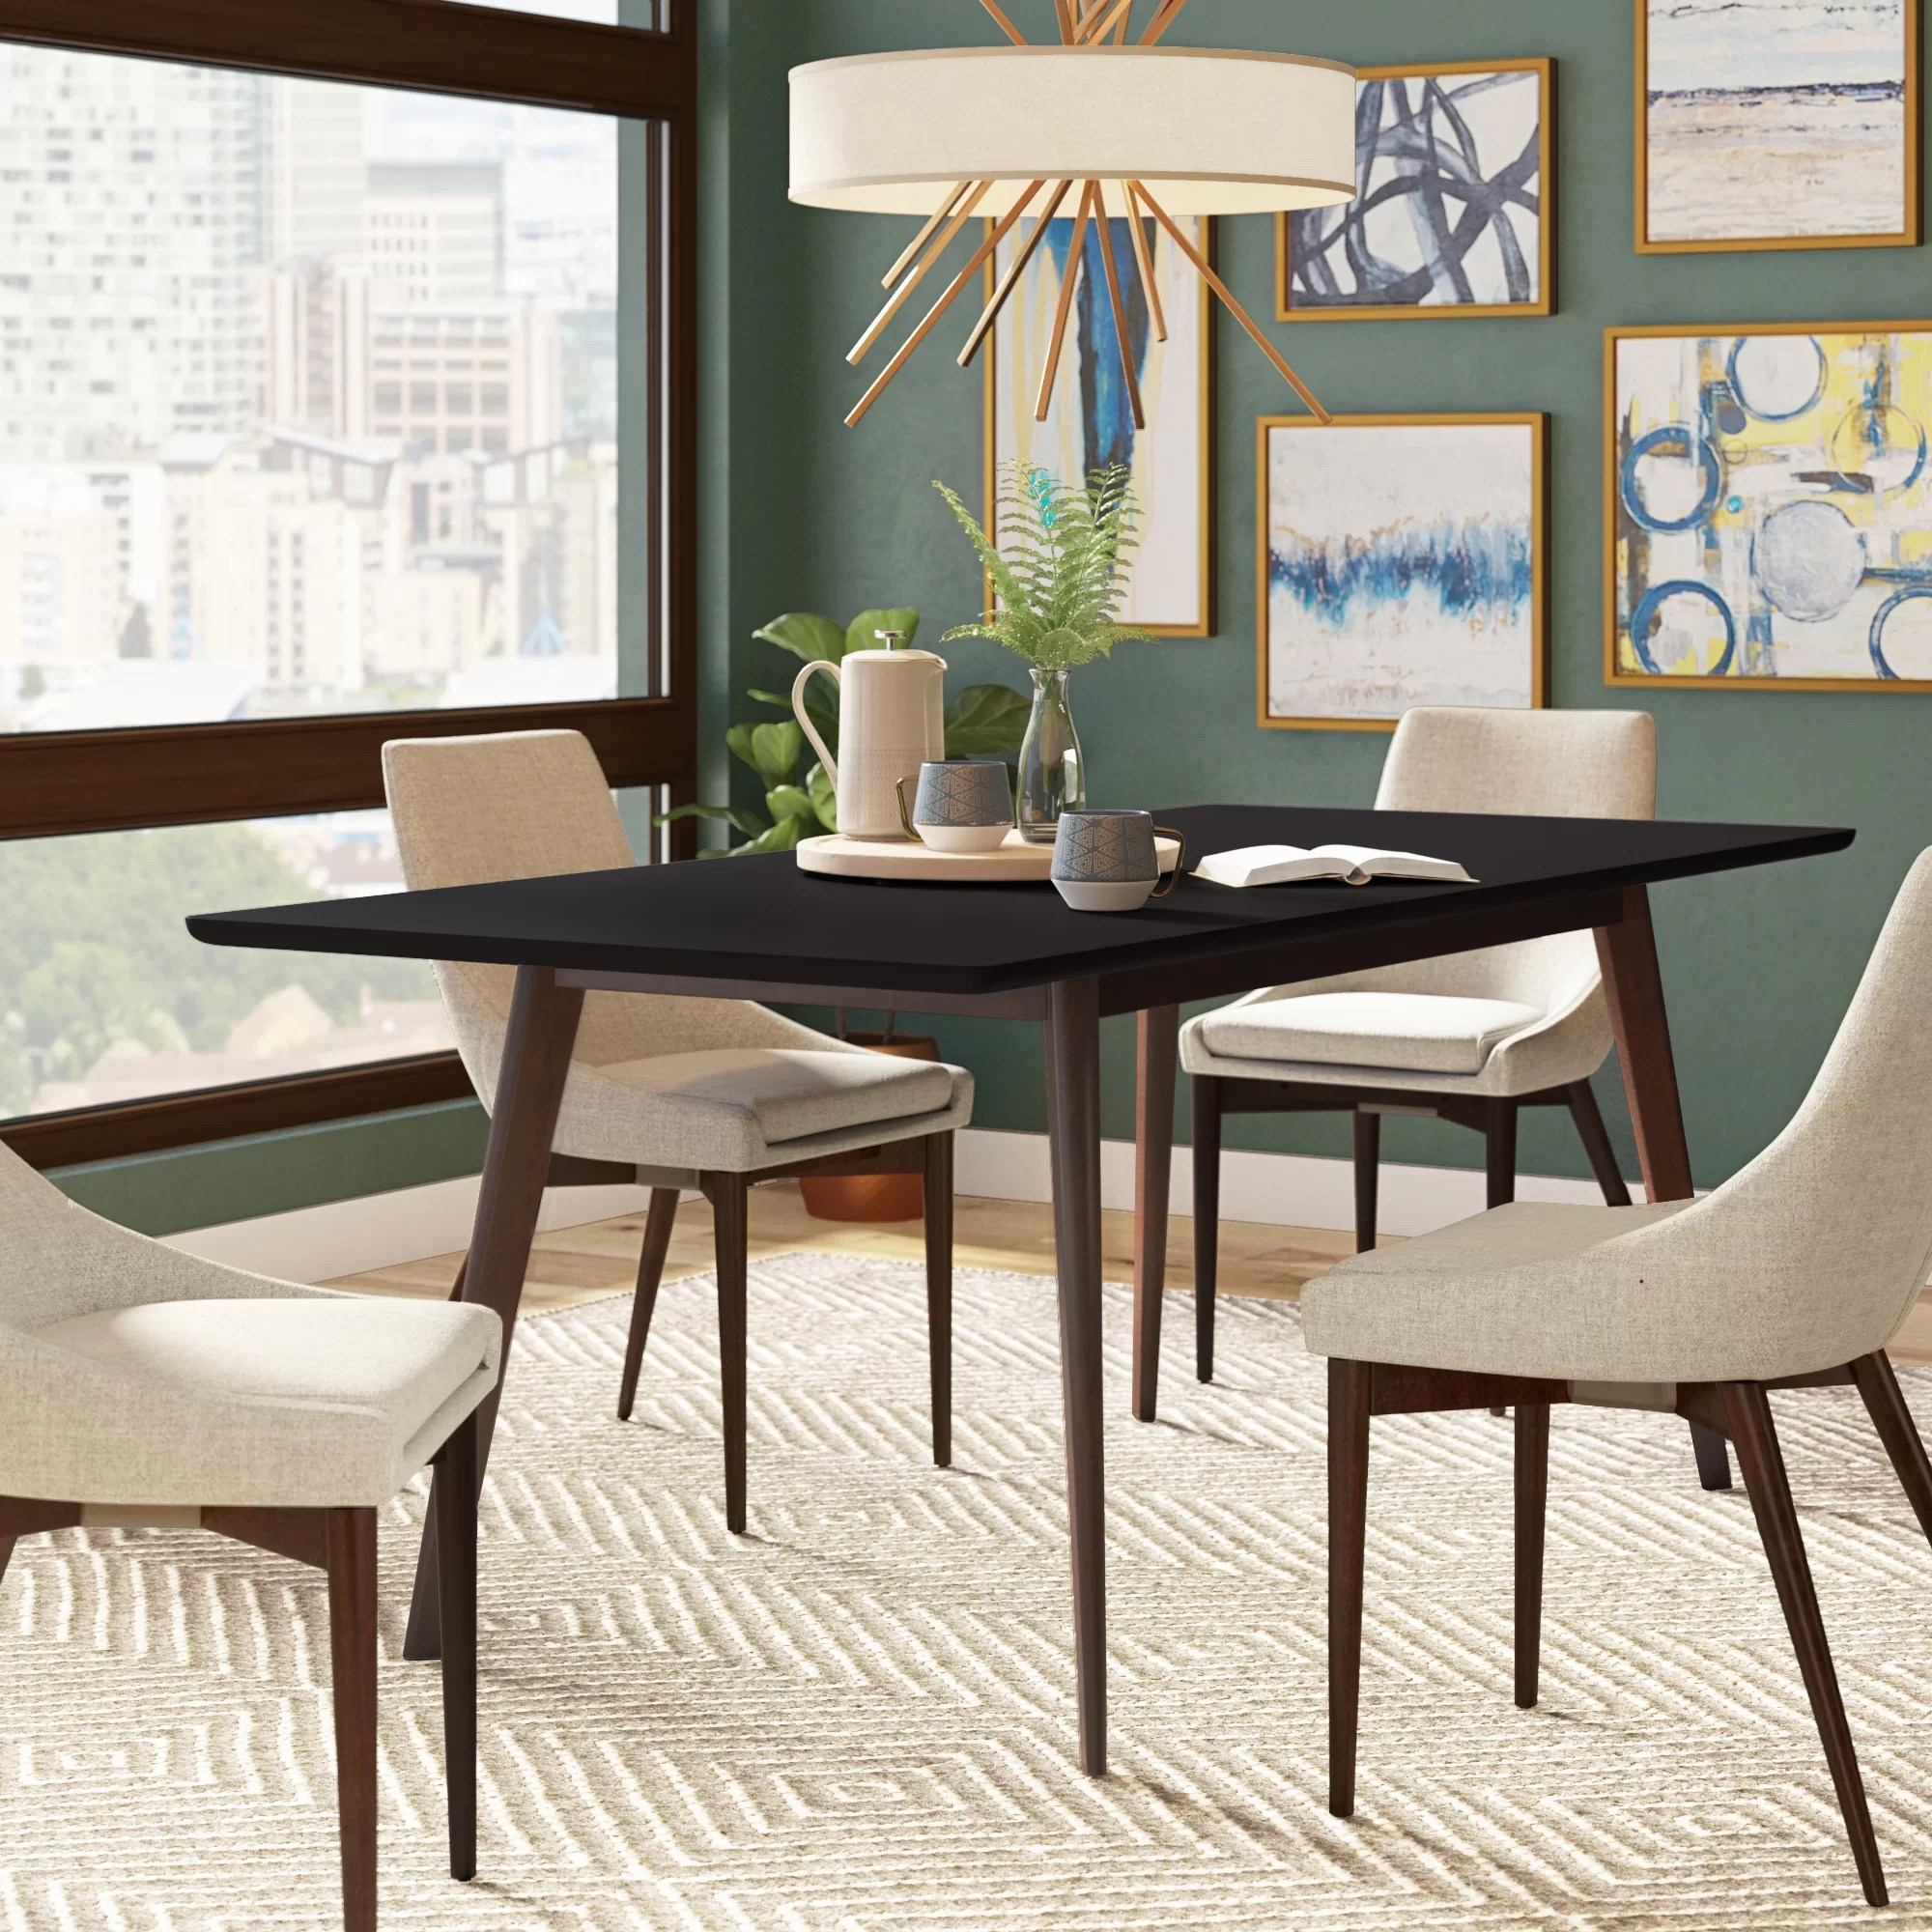 rubberwood butterfly table with 4 chairs real good chair copper wrought studio mcewen dining reviews wayfair